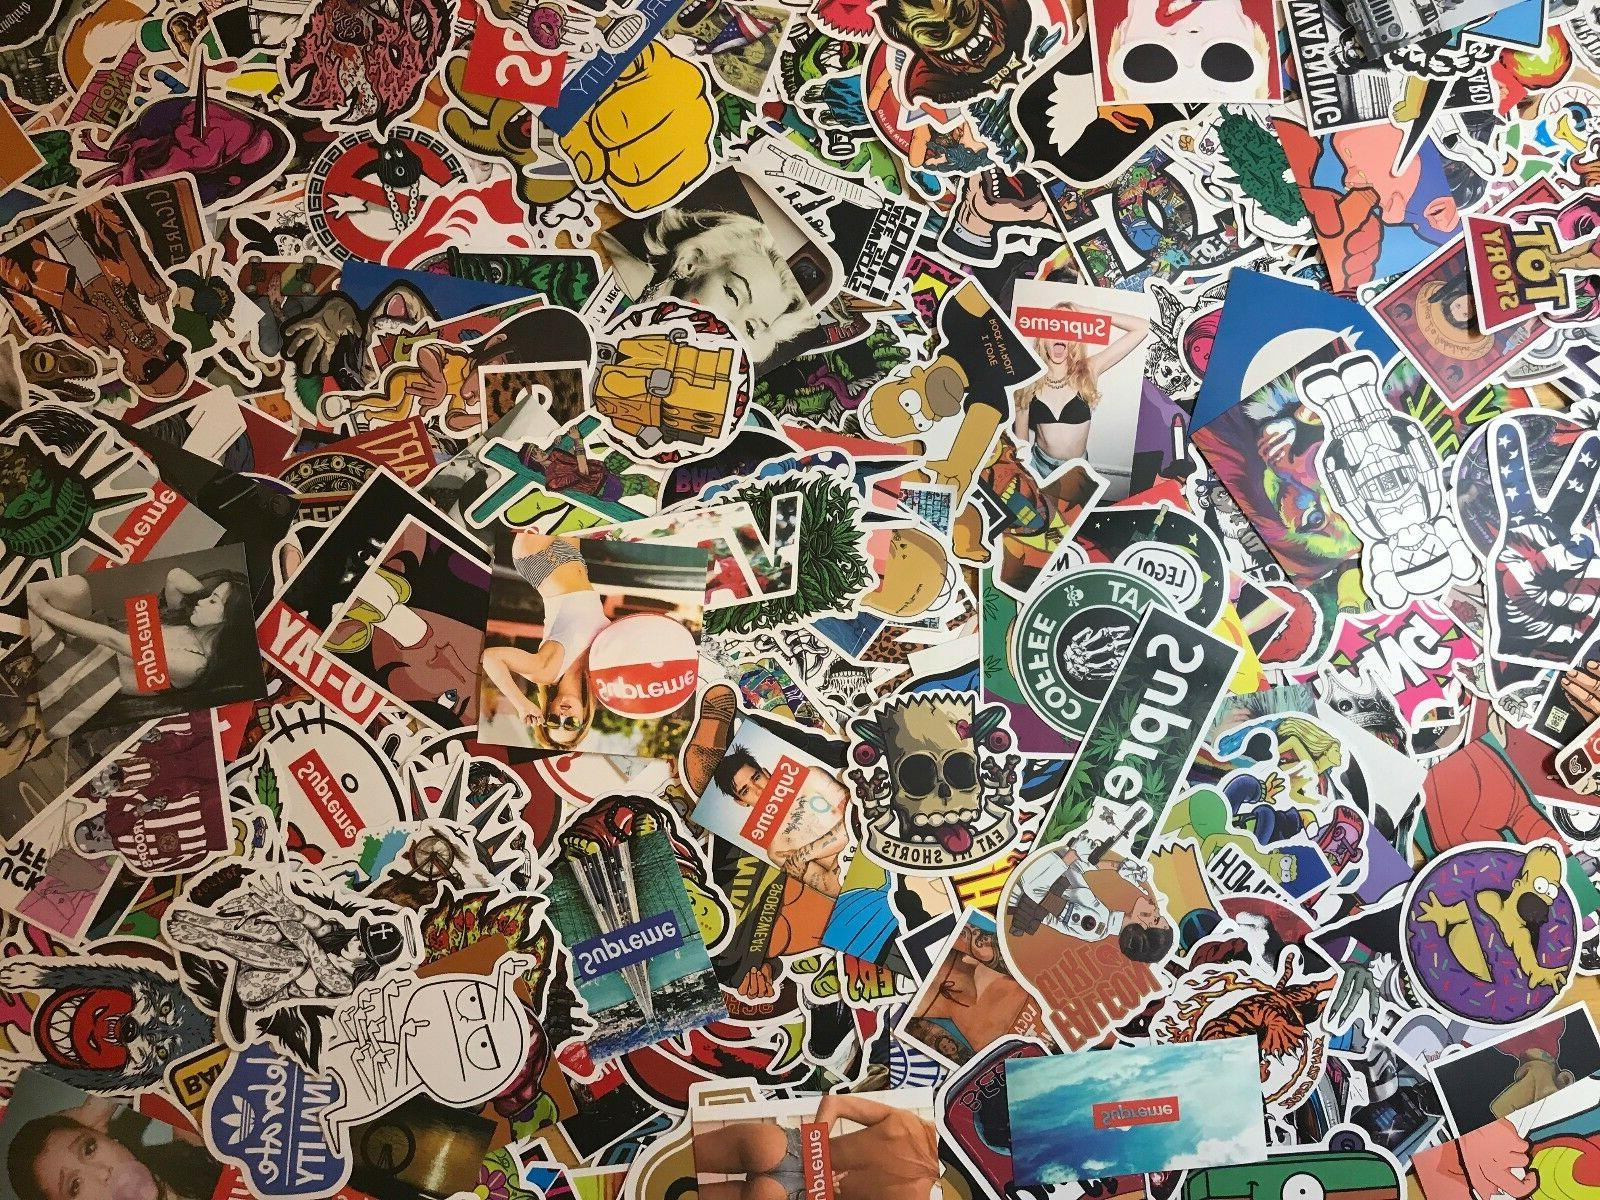 200 Stickers Vinyl Laptop Luggage Dope